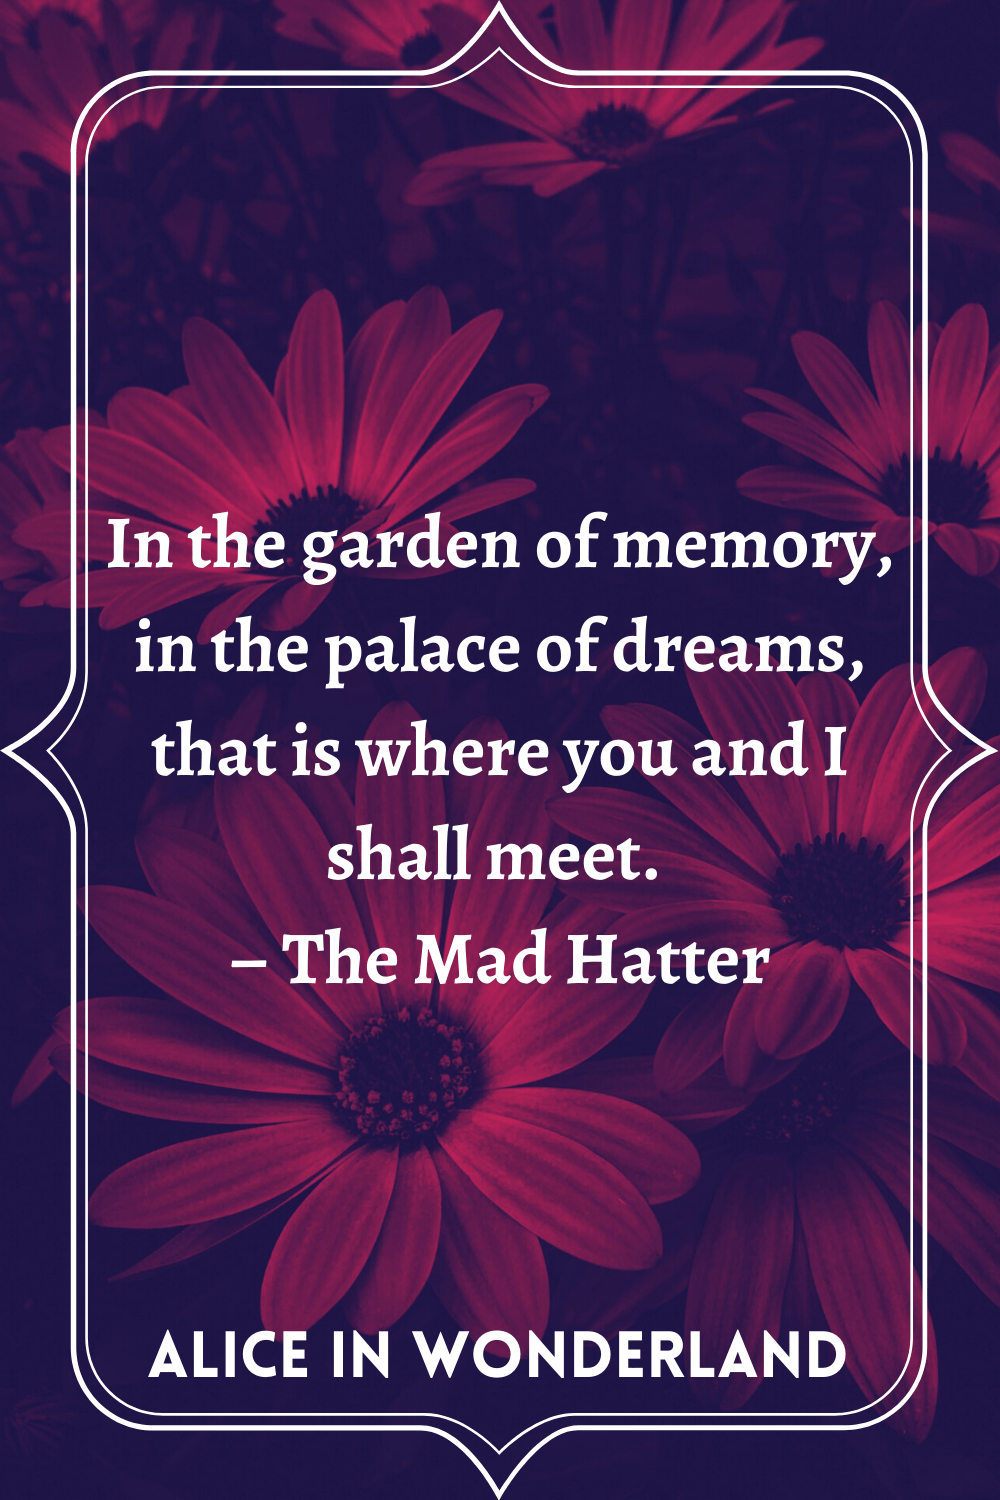 15 Alice In Wonderland Quotes To Live By